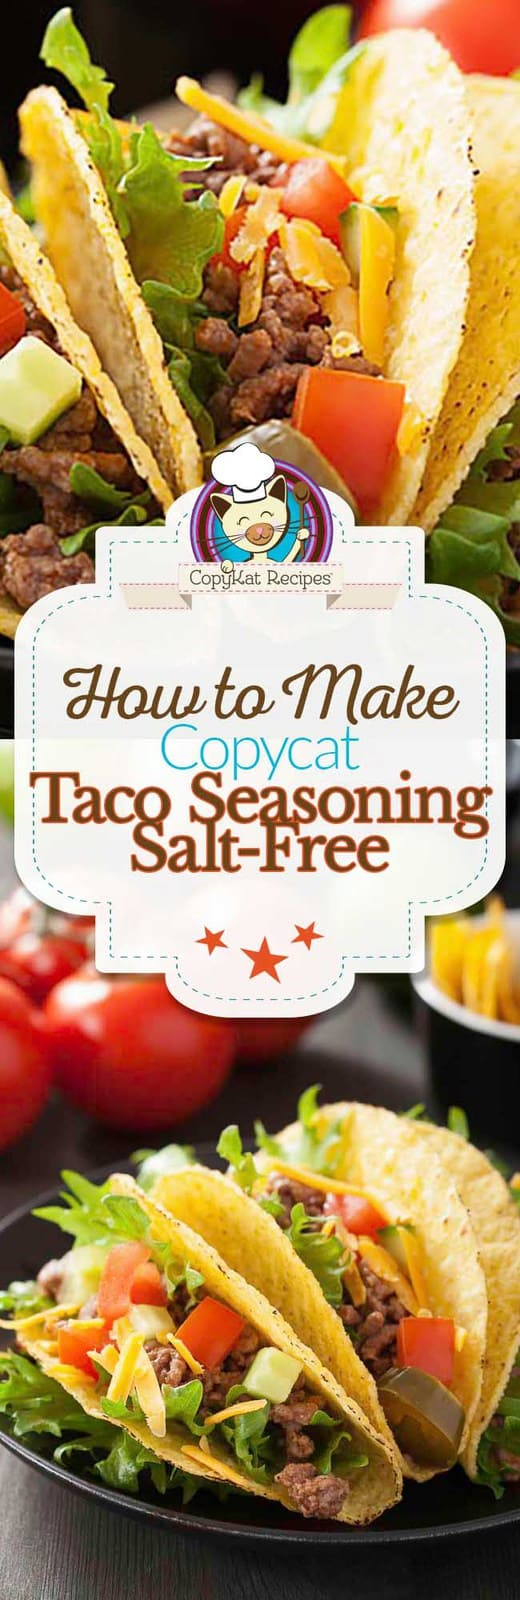 Make your own salt-free taco seasoning at home.  No preservatives, and no fillers.